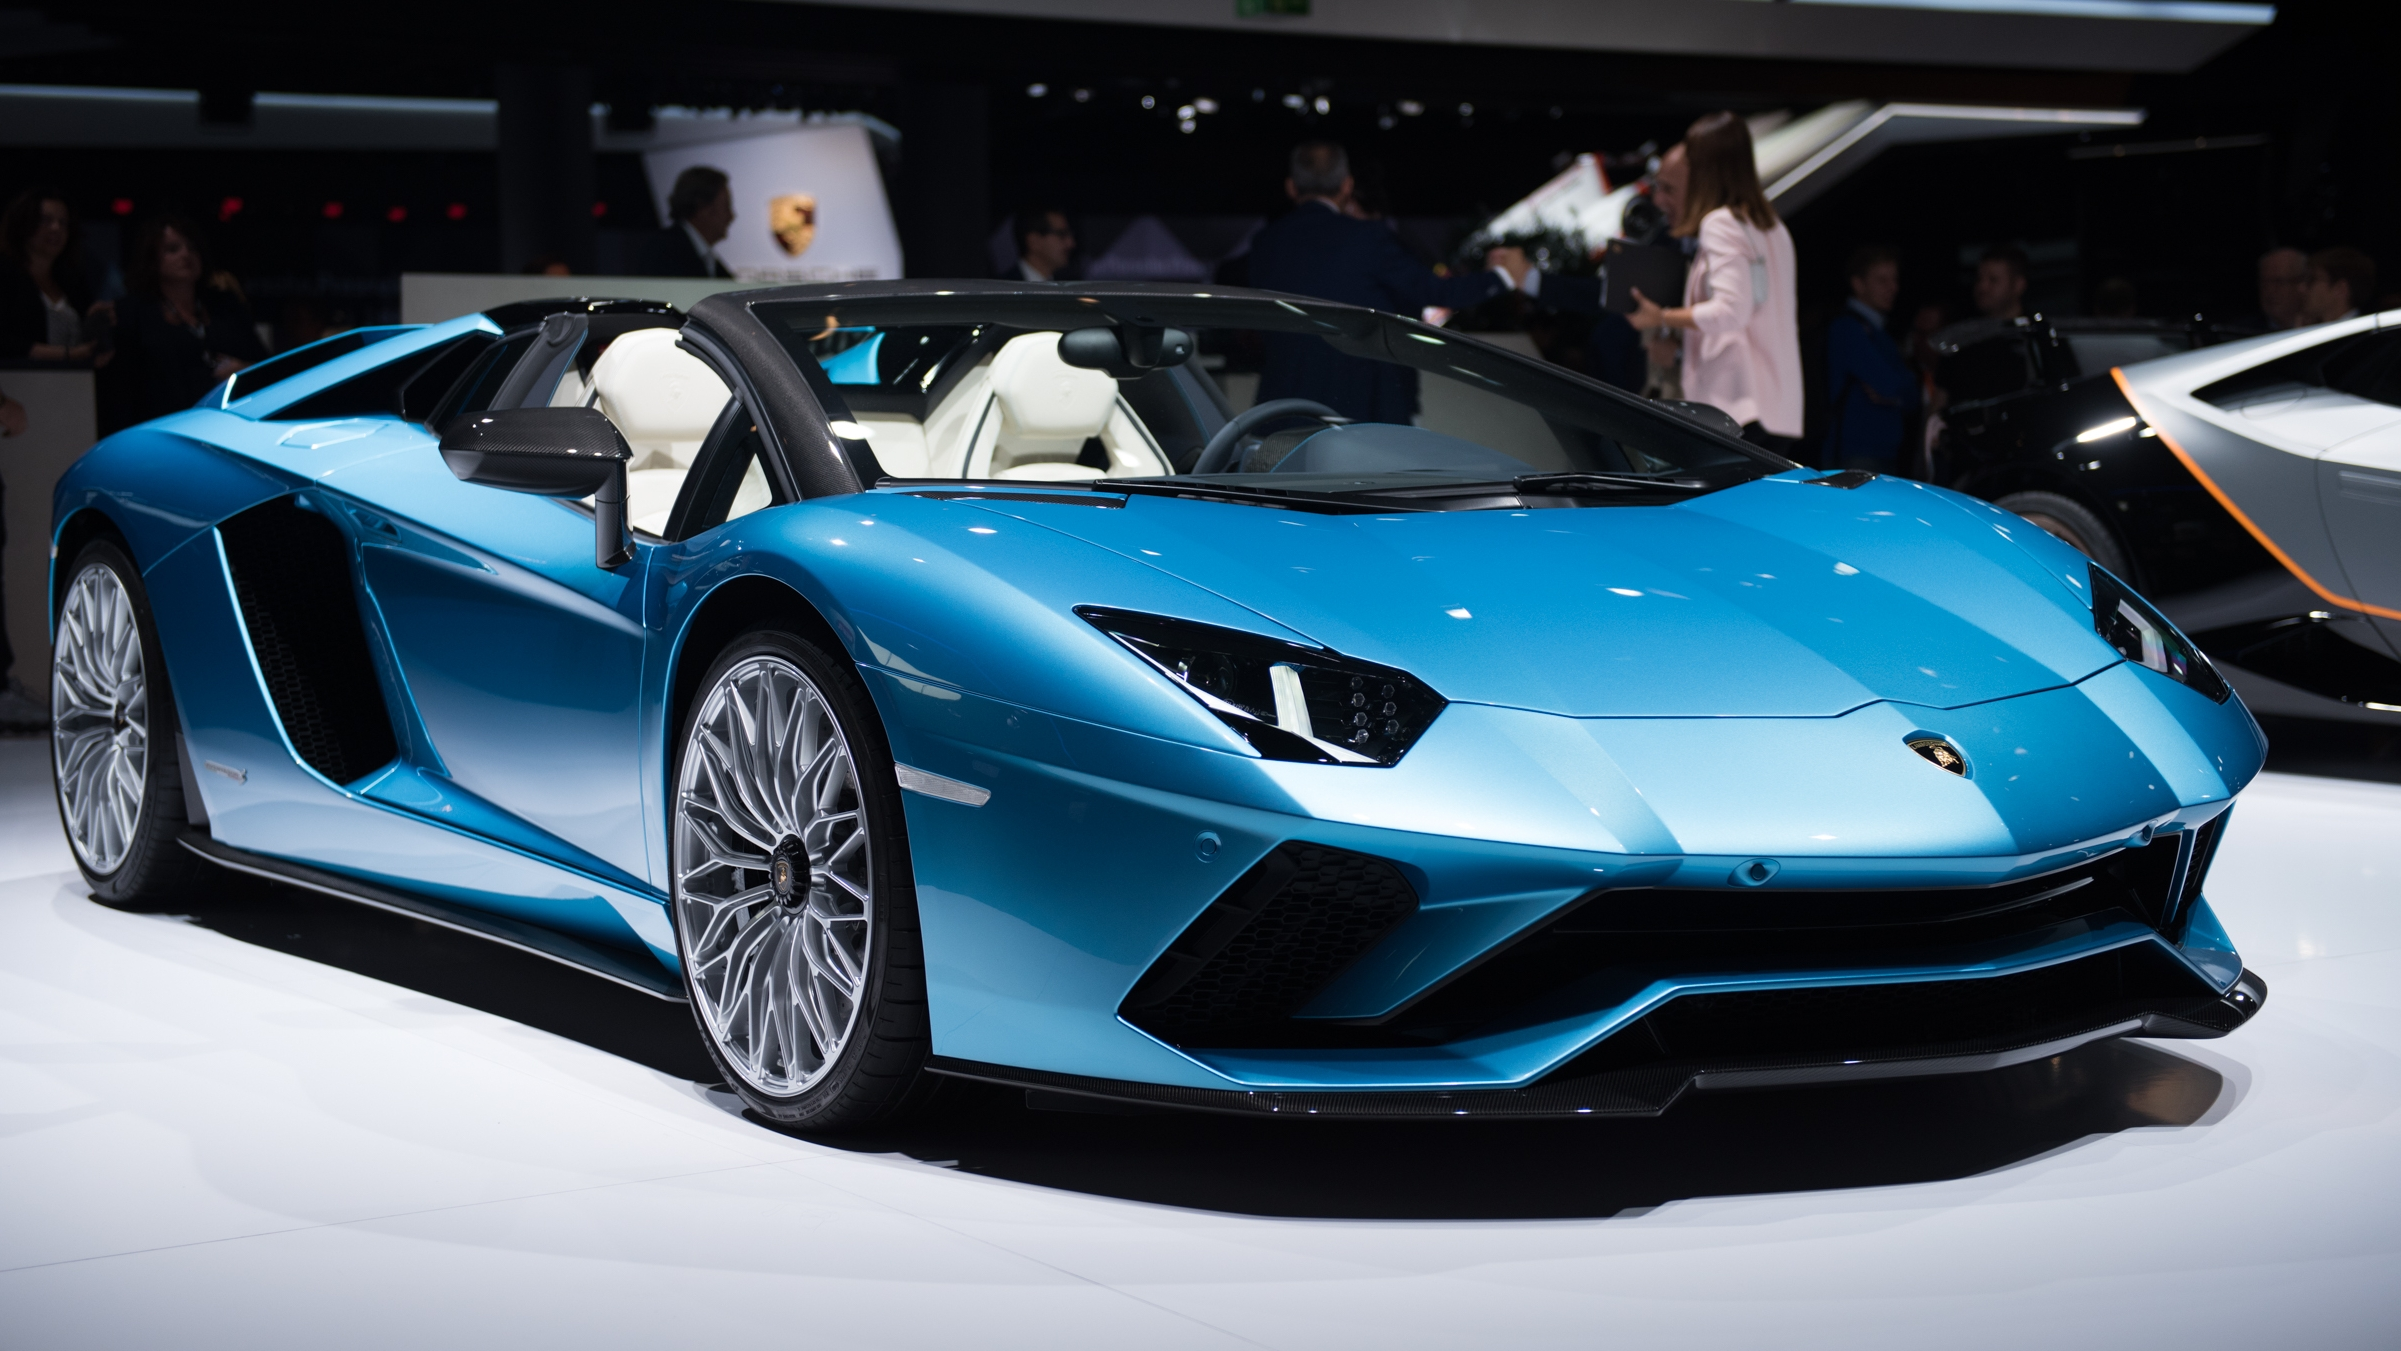 2018 lamborghini aventador s roadster review gallery top speed. Black Bedroom Furniture Sets. Home Design Ideas